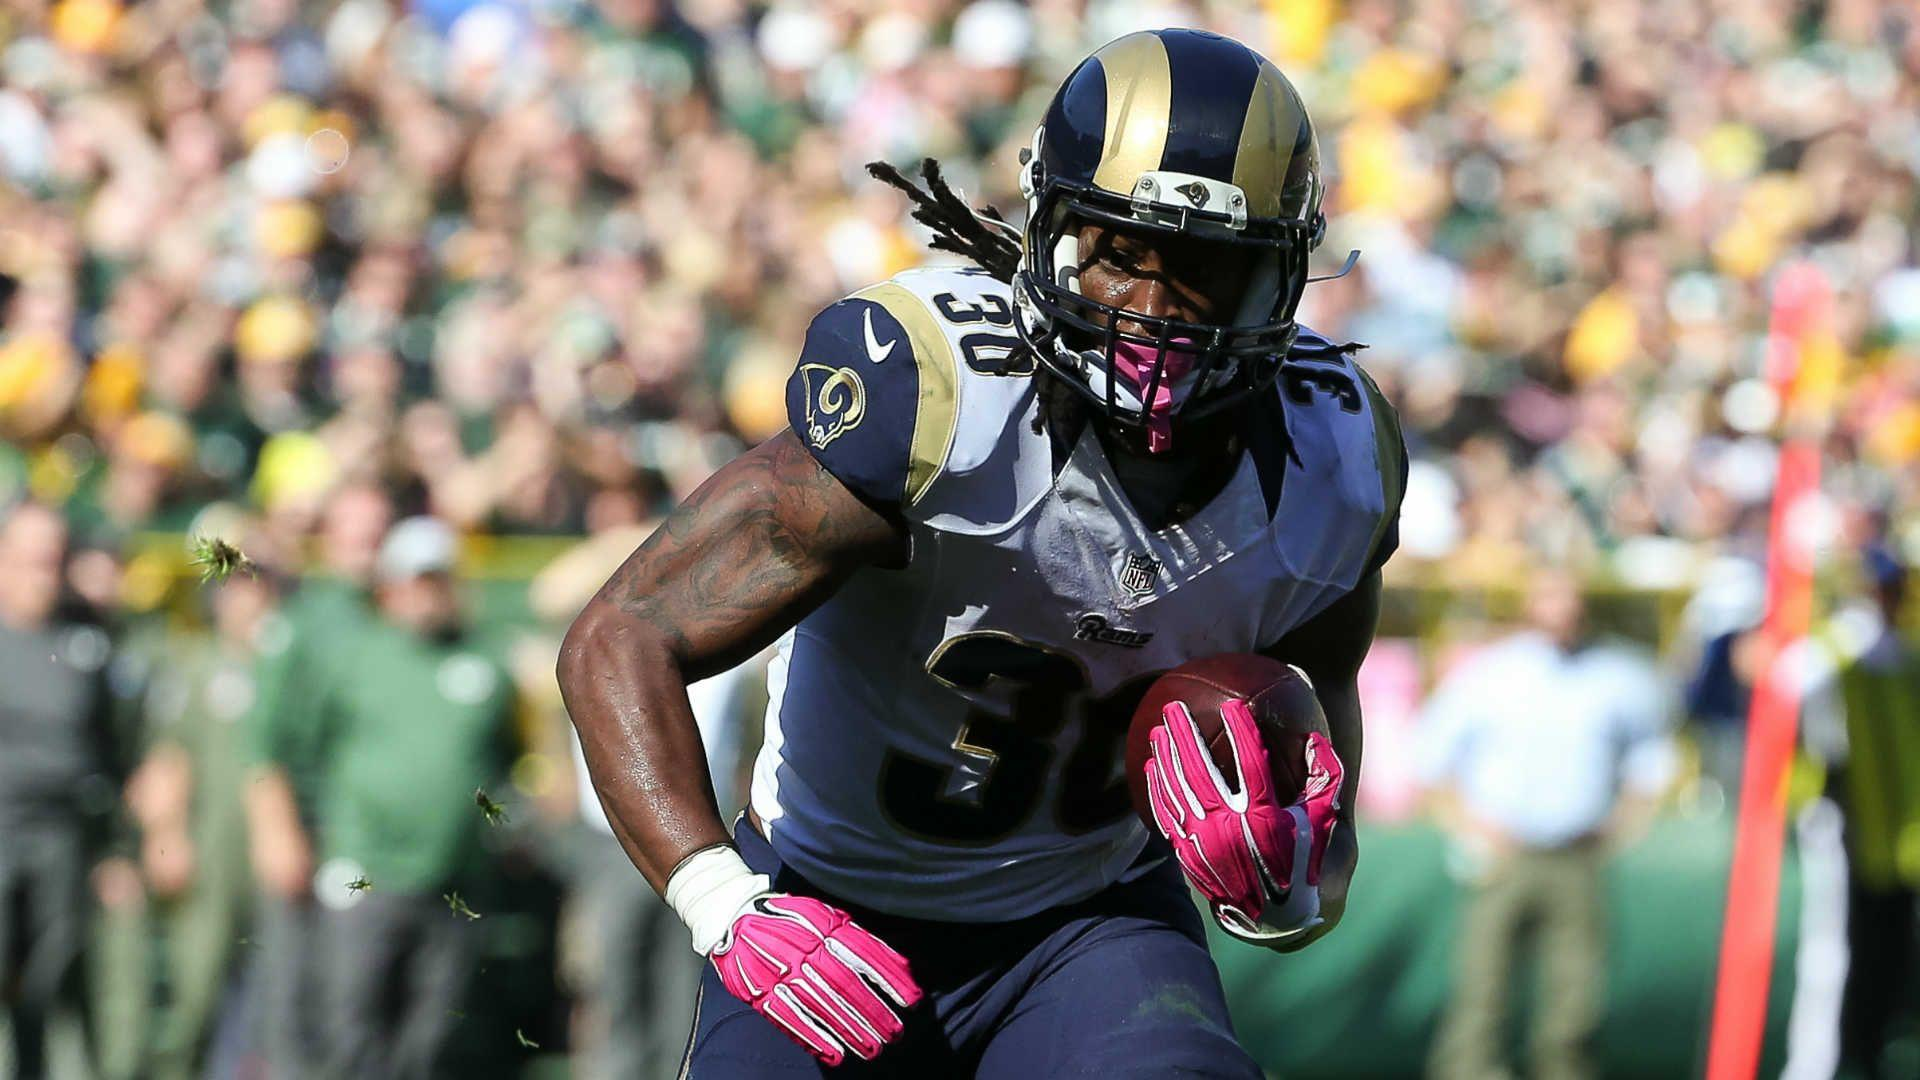 NFL rookie rankings: Rams' Todd Gurley sprints to top